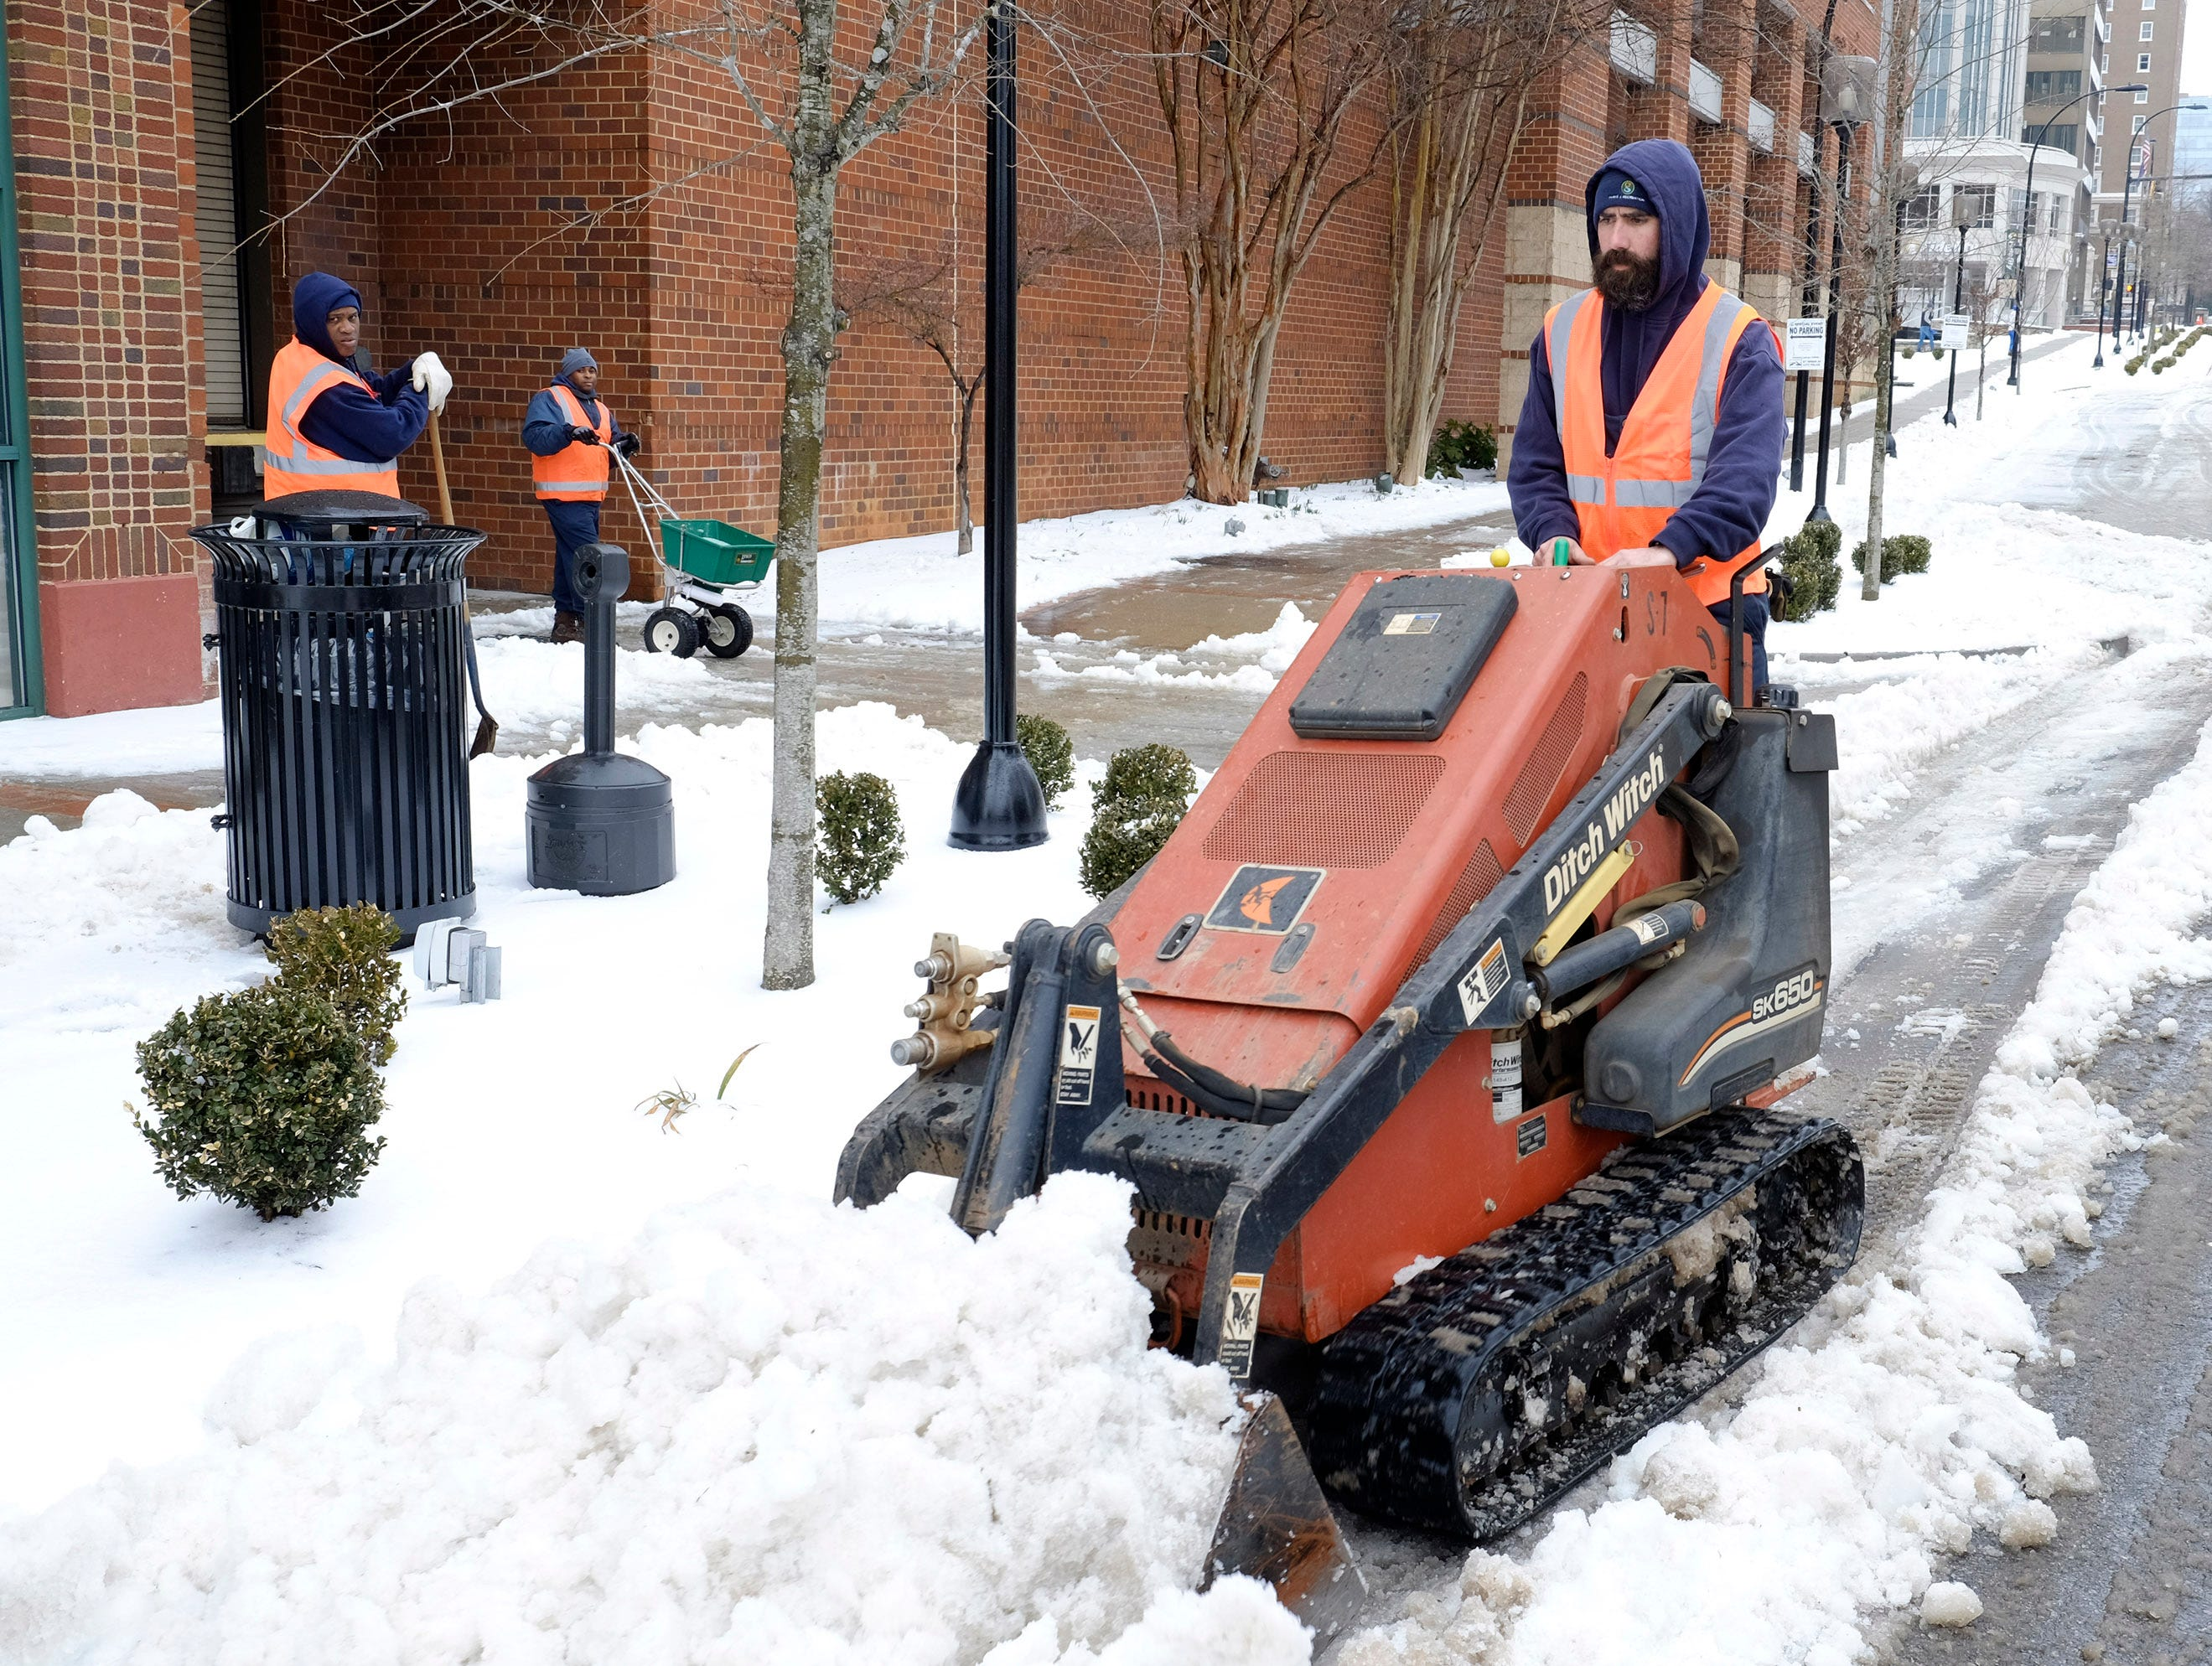 Workers clean up the snow on Main Street in Greenville Wednesday, February 12, 2014.